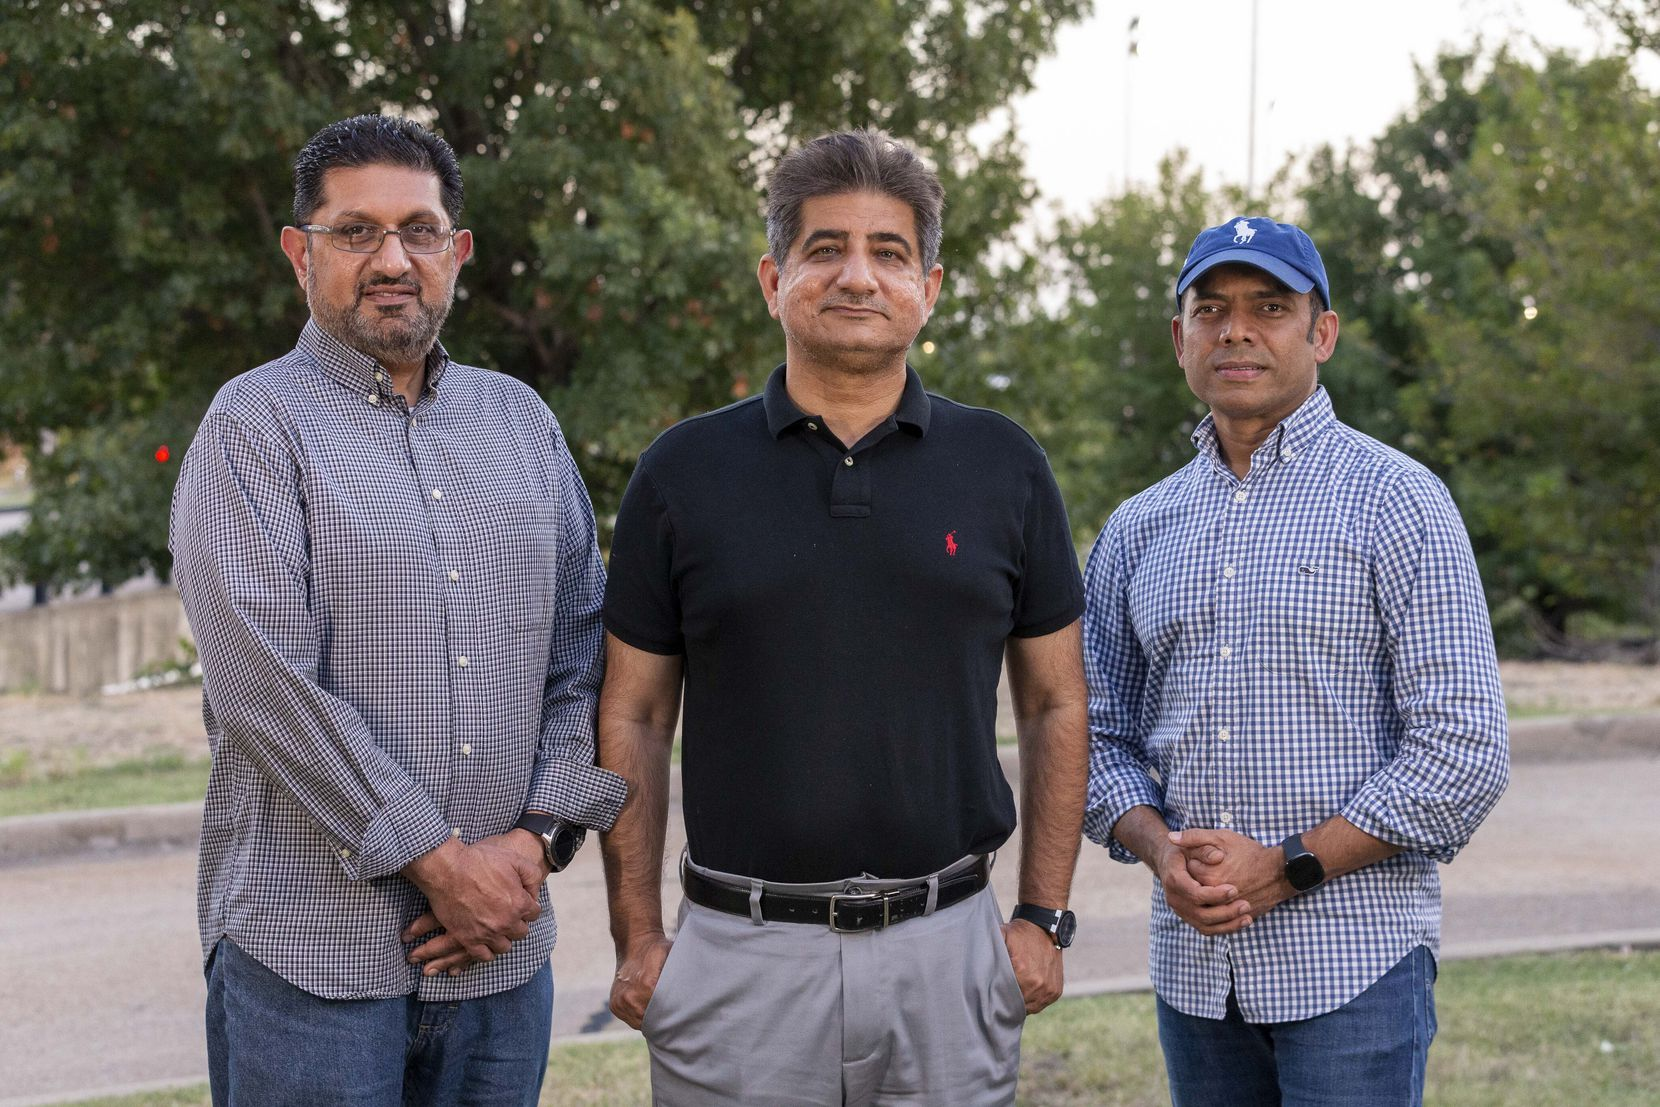 Plano resident Khalid Ishaq (from left), Nadeem Akhtar of Irving and Rais Bhuiyan of Dallas. Akhtar is the brother-in-law of Waqar Hasan, who was slain by white supremacist Mark Stroman on Sept. 15, 2001. Ishaq is a Muslim activist who accompanied Akhtar to help identify Hasan's body. Bhuiyan was another Stroman shooting victim, and the only one to survive.